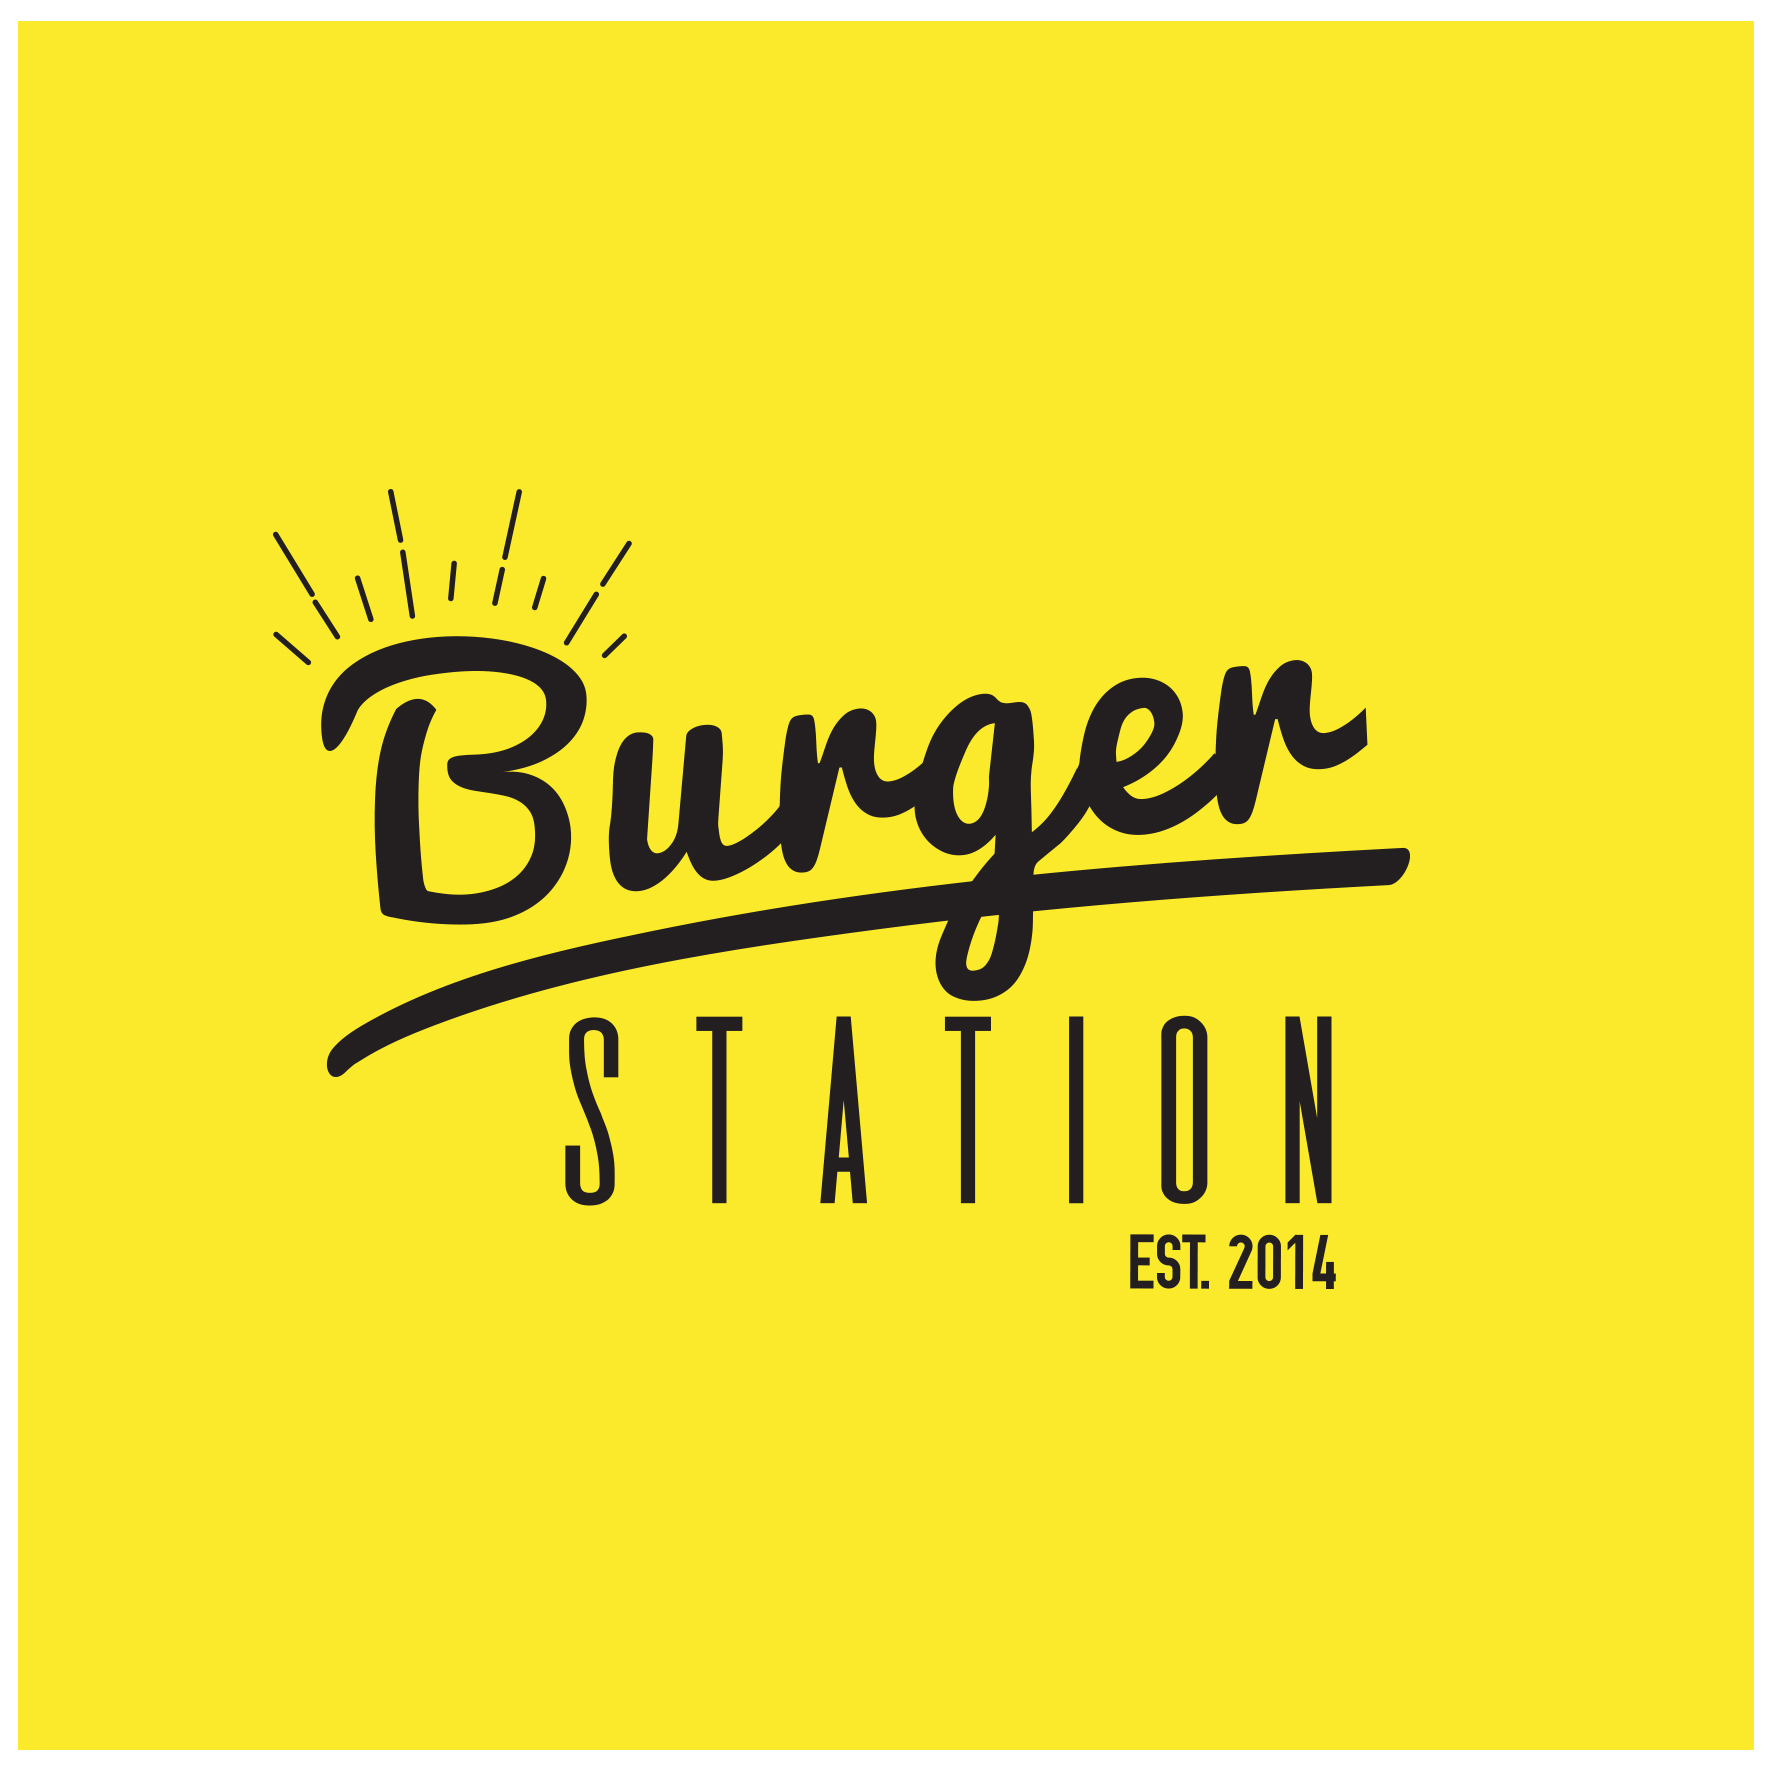 Diseño de logotipo Burger Station